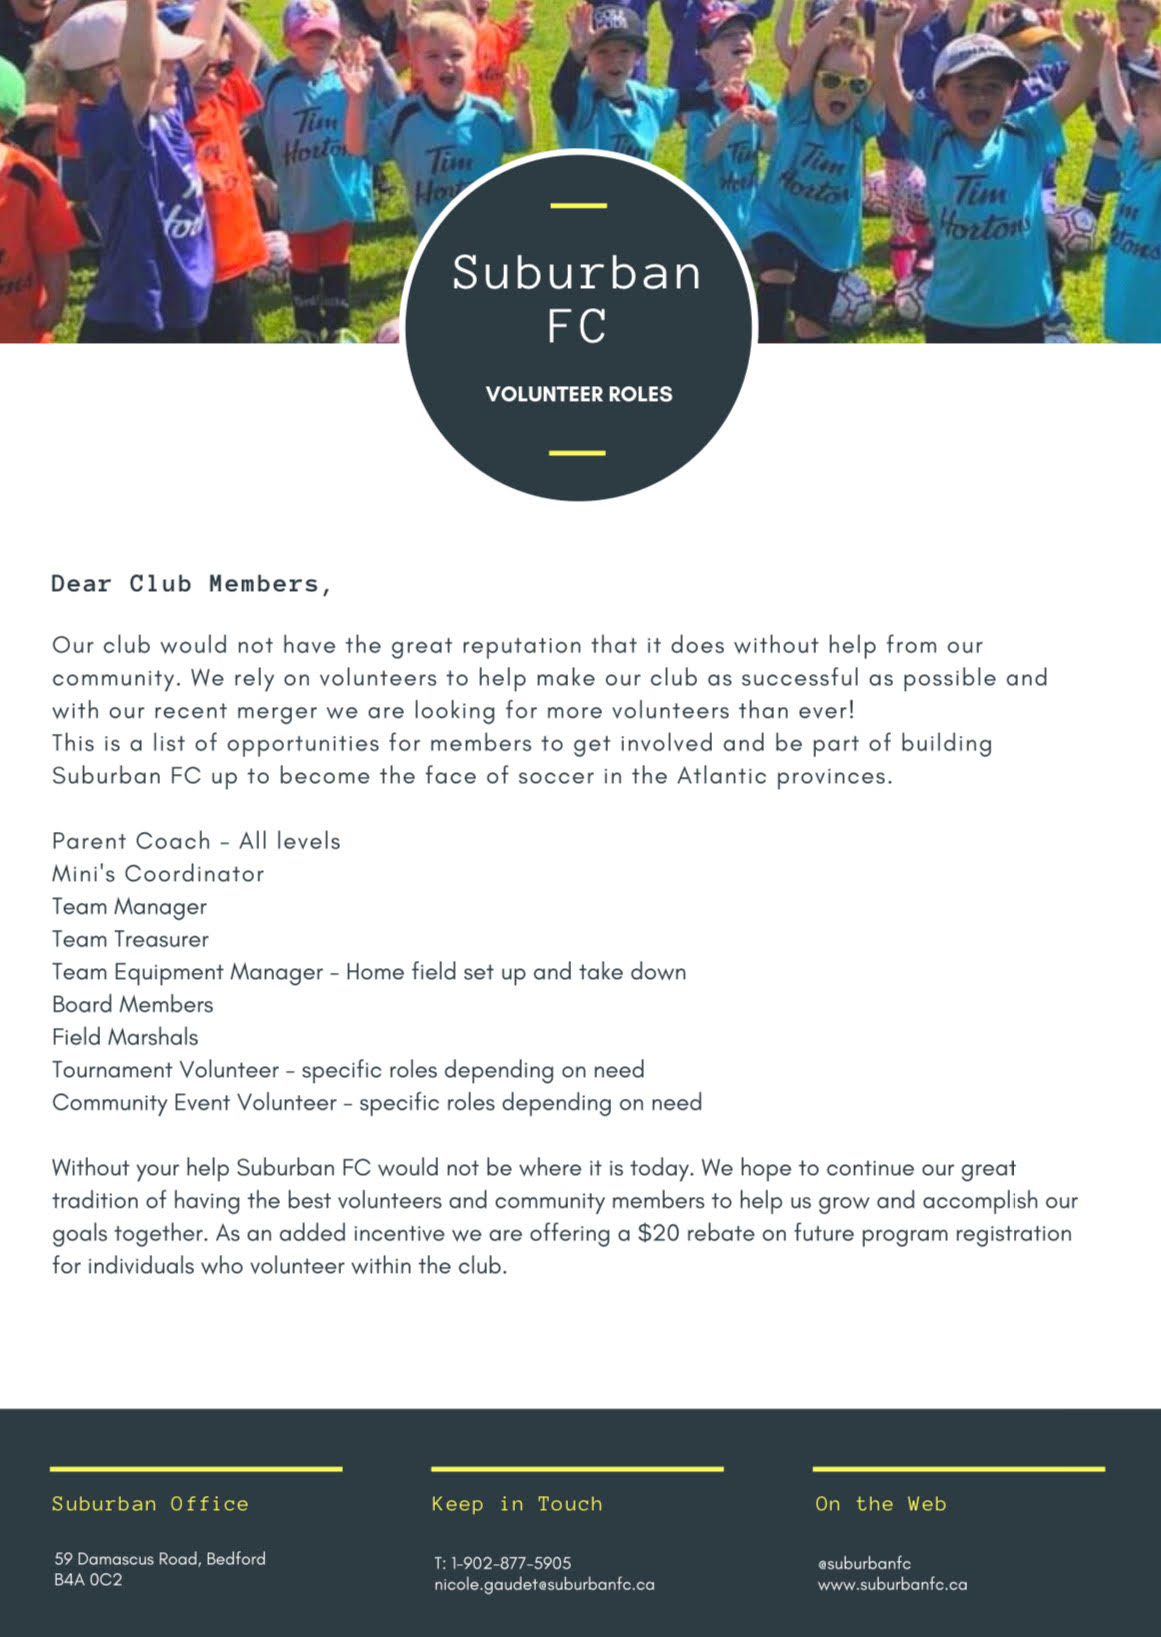 Suburban FC is actively seeking volunteers for the Summer 2020 season!